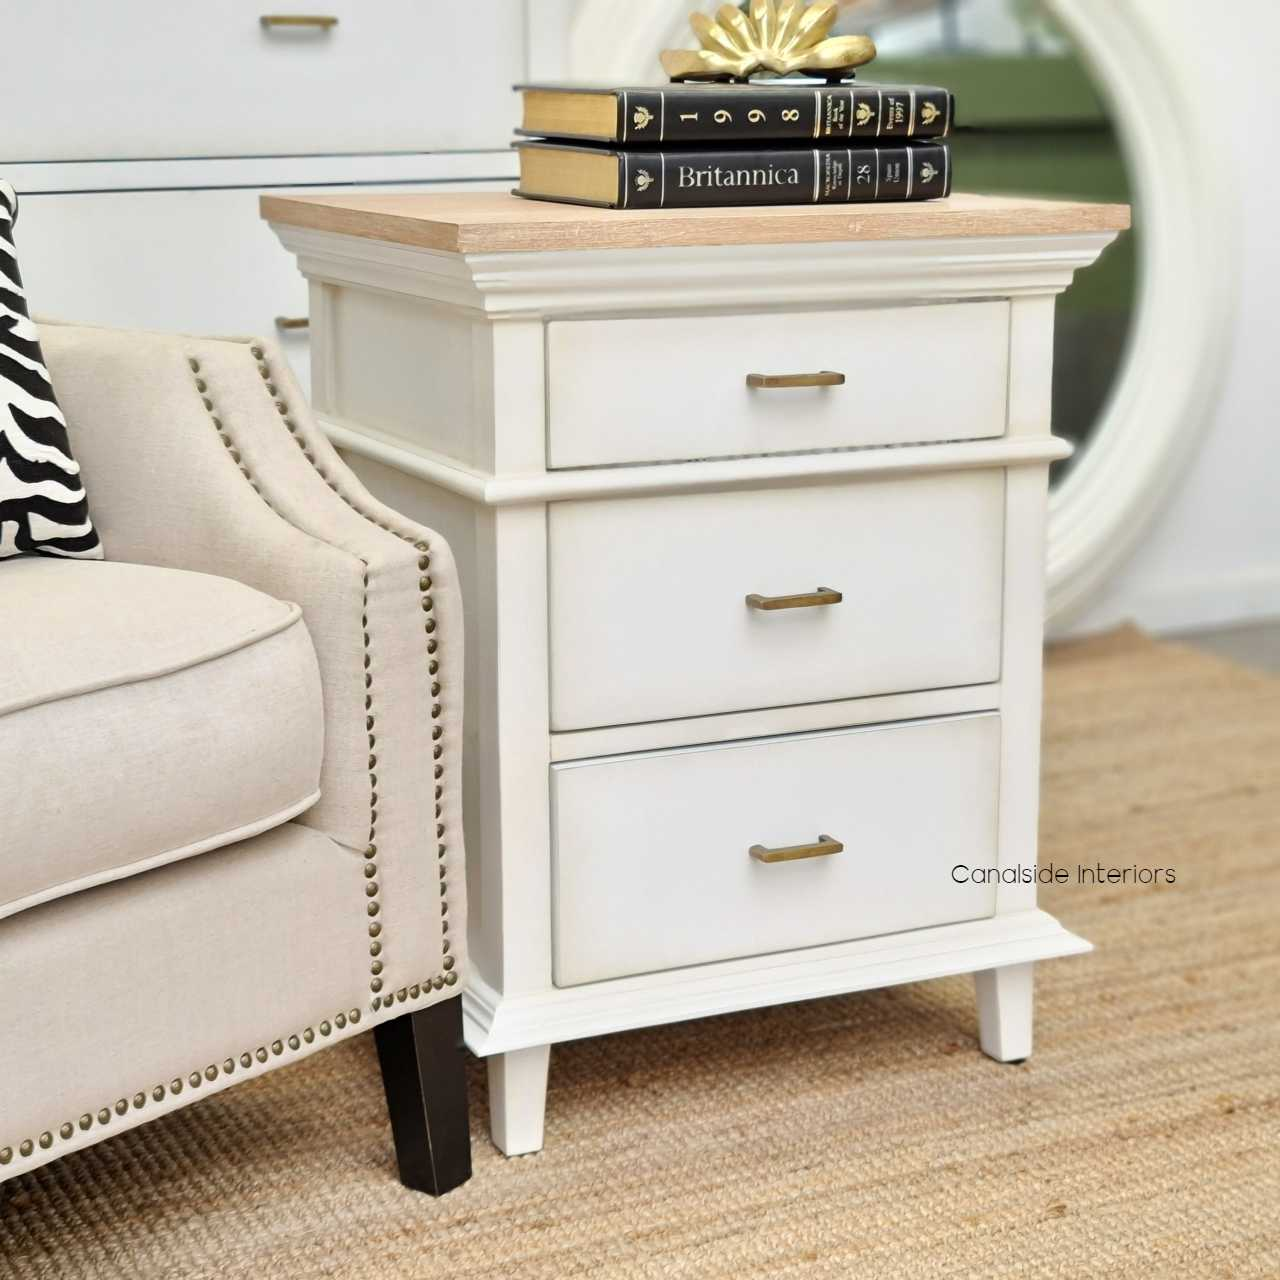 Berry II Court Bedside Distressed WhiteLimewash Top  BEDROOM, HAMPTONS Style, PLANTATION Style, TABLES Side Tables, LIVING Coffee & Side Tables, BEDROOM Bedsides